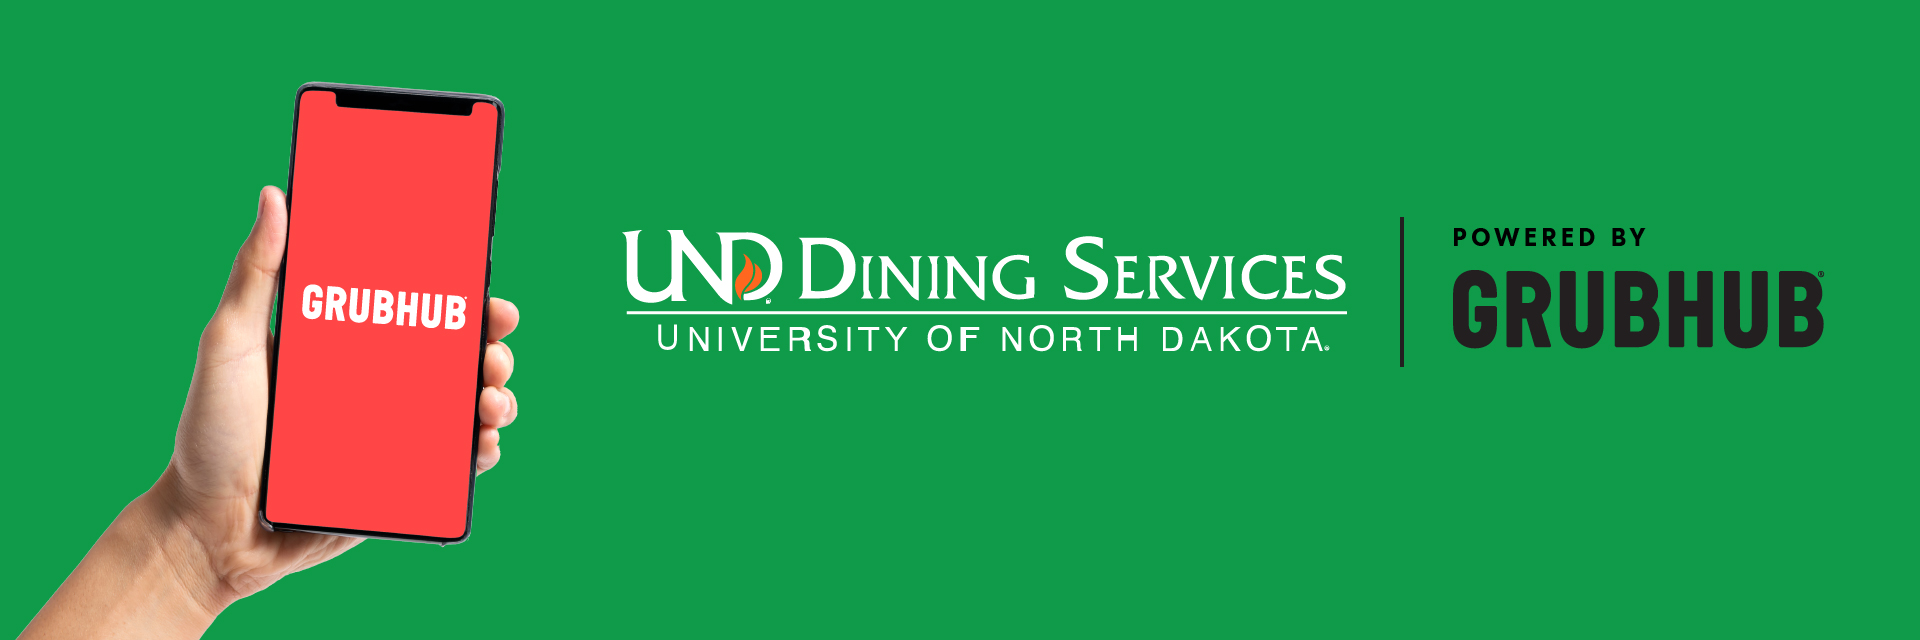 und dining services logo with the words powered by grubhub next to it, accompanied with hand holding a phone with a grubhub app opening on it